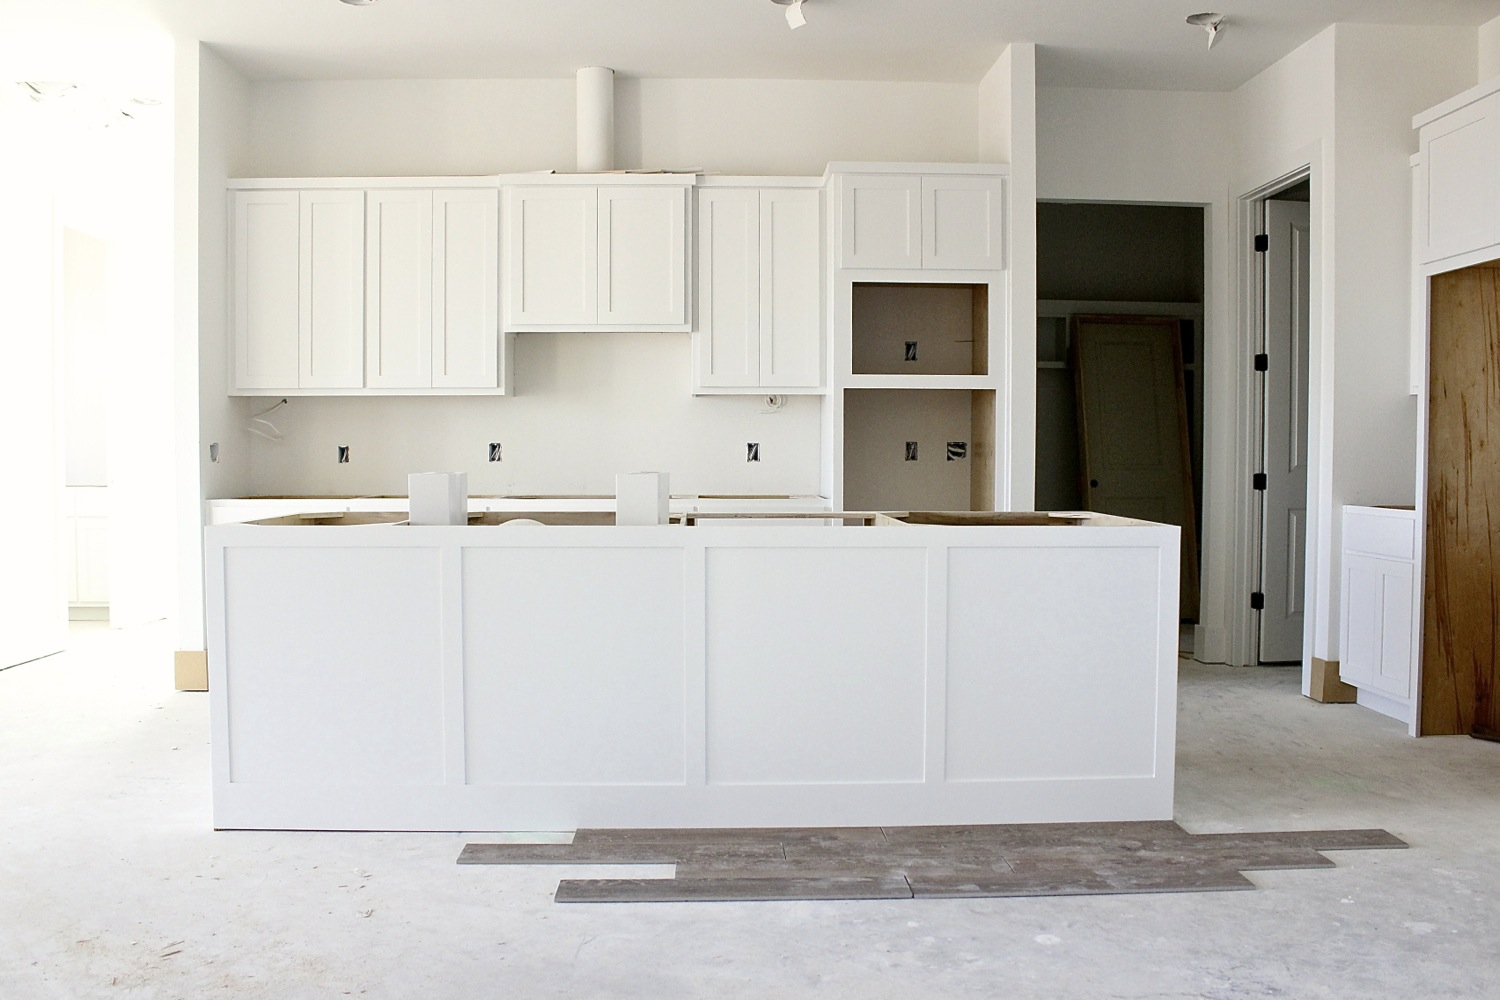 What Color Countertops Go With White Cabinets Building A New Home Tile Flooring Countertops And